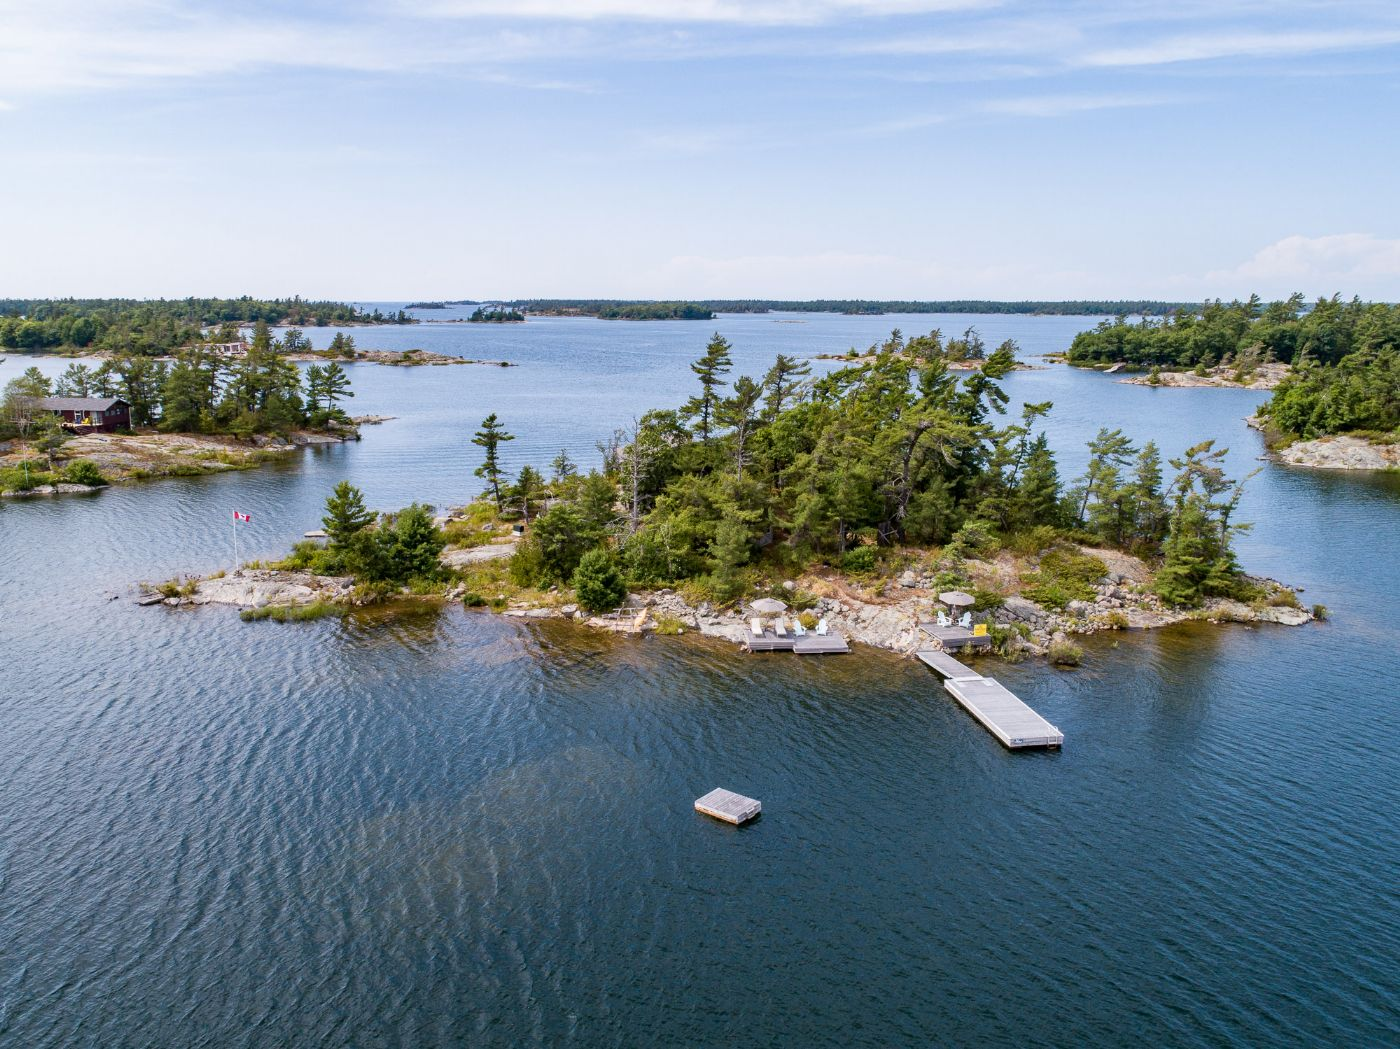 Charming Cottage Georgian Bay Cottages for Sale Waterfront ...